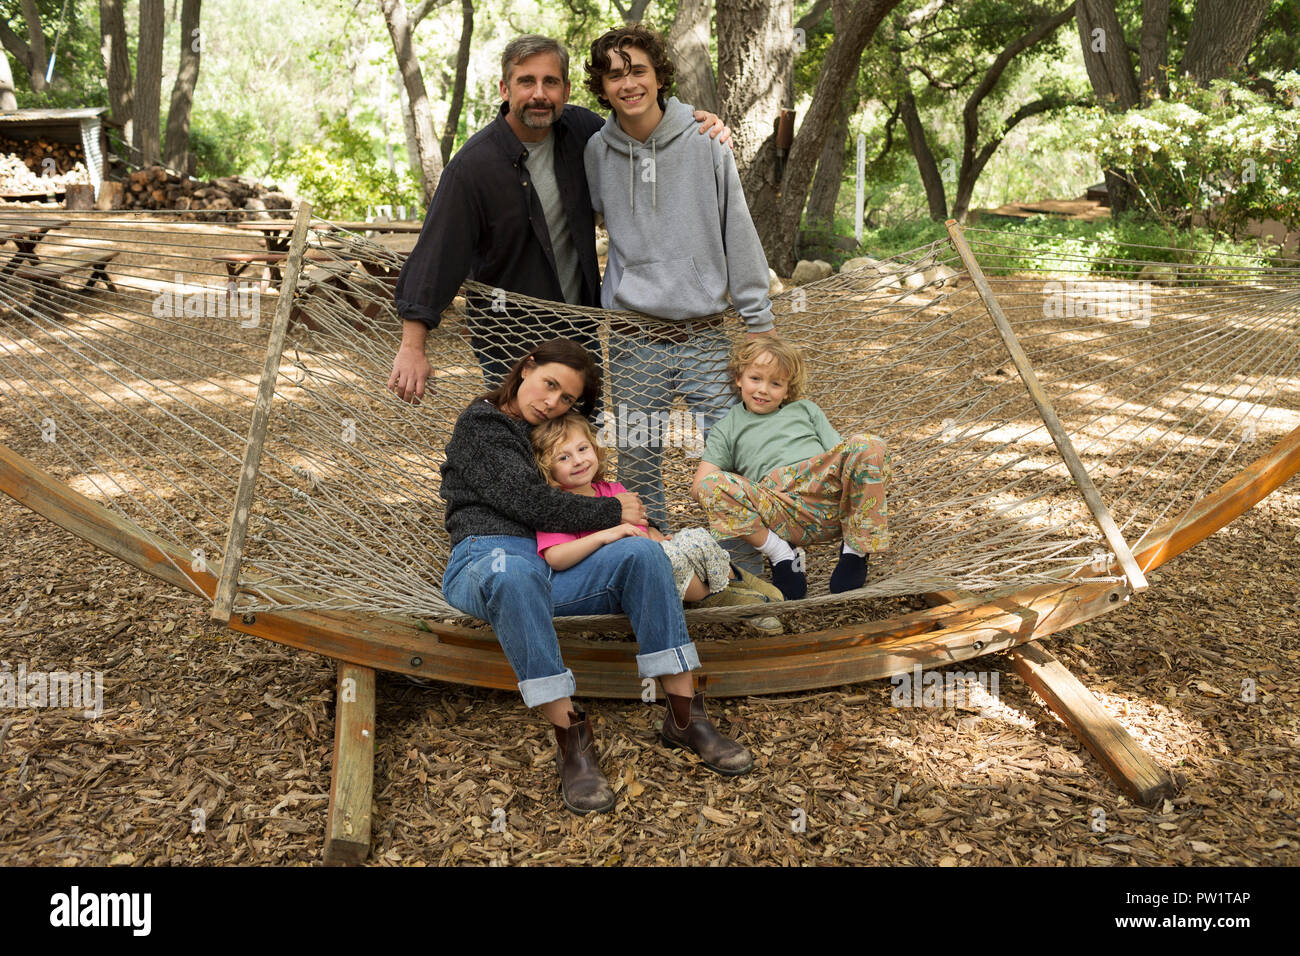 RELEASE DATE: October 12, 2018 TITLE: Beautiful Boy STUDIO: Amazon Studios DIRECTOR: Felix Van Groeningen PLOT: Based on the best-selling pair of memoirs from father and son David and Nic Sheff, Beautiful Boy chronicles the heartbreaking and inspiring experience of survival, relapse, and recovery in a family coping with addiction over many years. STARRING: Steve Carell, Maura Tierney, TimothŽe Chalamet, Oakley Bull, Christian Convery. (Credit Image: © Amazon Studios/Entertainment Pictures) - Stock Image